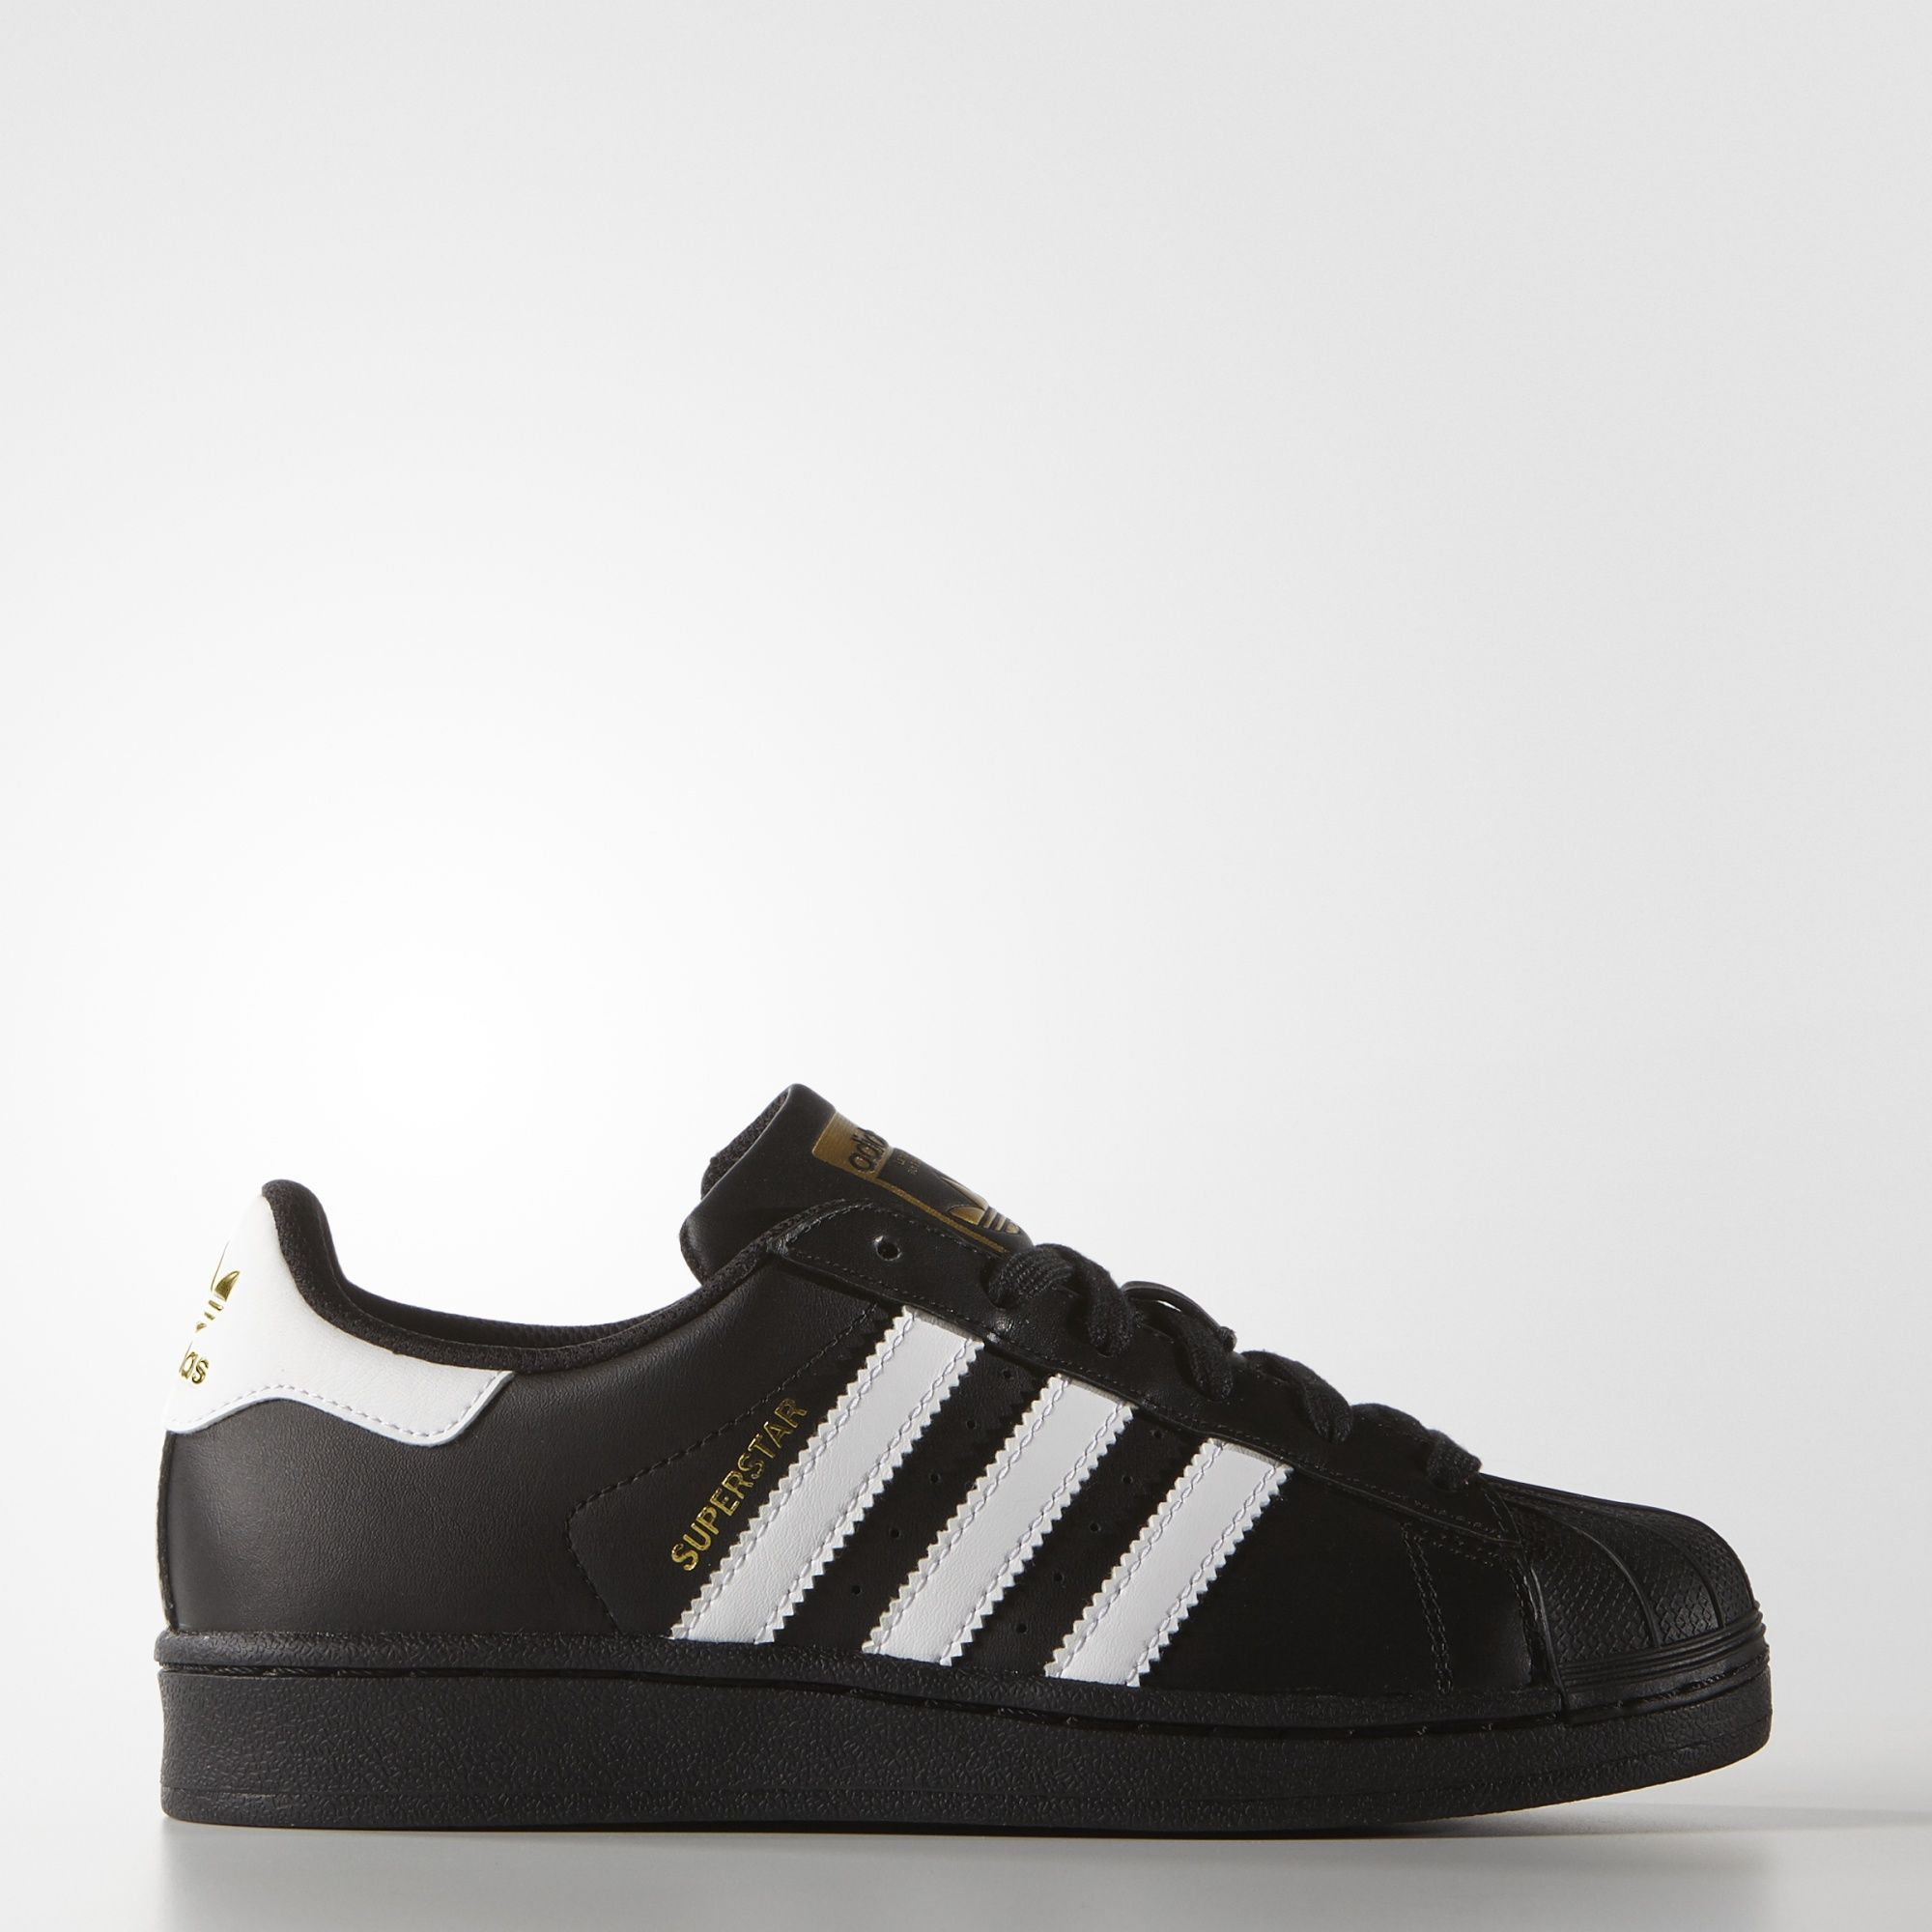 Shop for Superstar Foundation Shoes - Black at adidas. See all the styles  and colours of Superstar Foundation Shoes - Black at the official adidas  Belgium ...